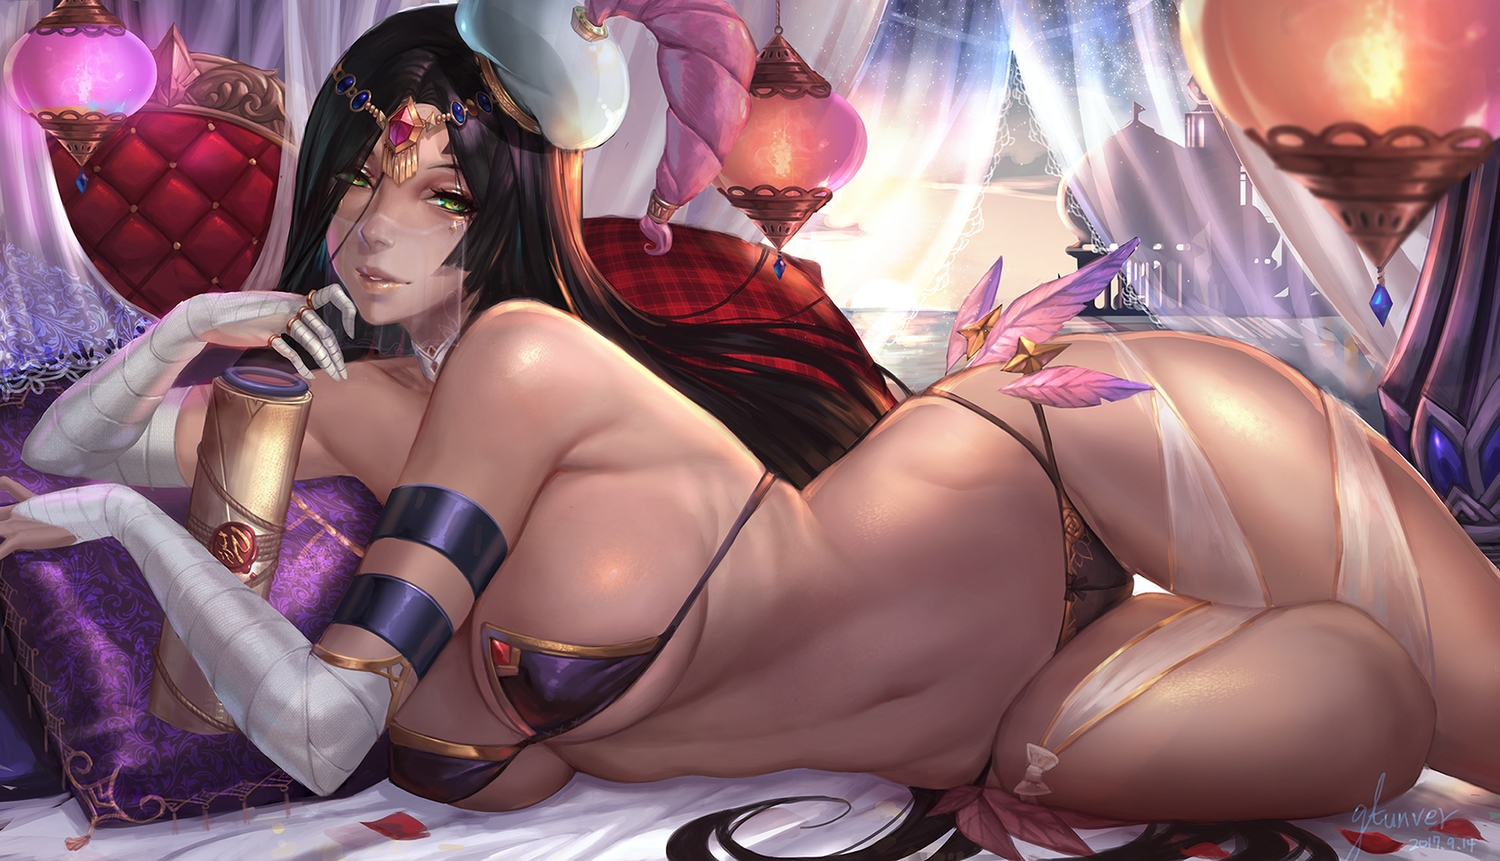 bandage bed bikini black_hair breasts choker cleavage elbow_gloves erect_nipples fate/grand_order fate_(series) gloves green_eyes gtunver headdress long_hair scheherazade_(fate/grand_order) signed swimsuit underboob